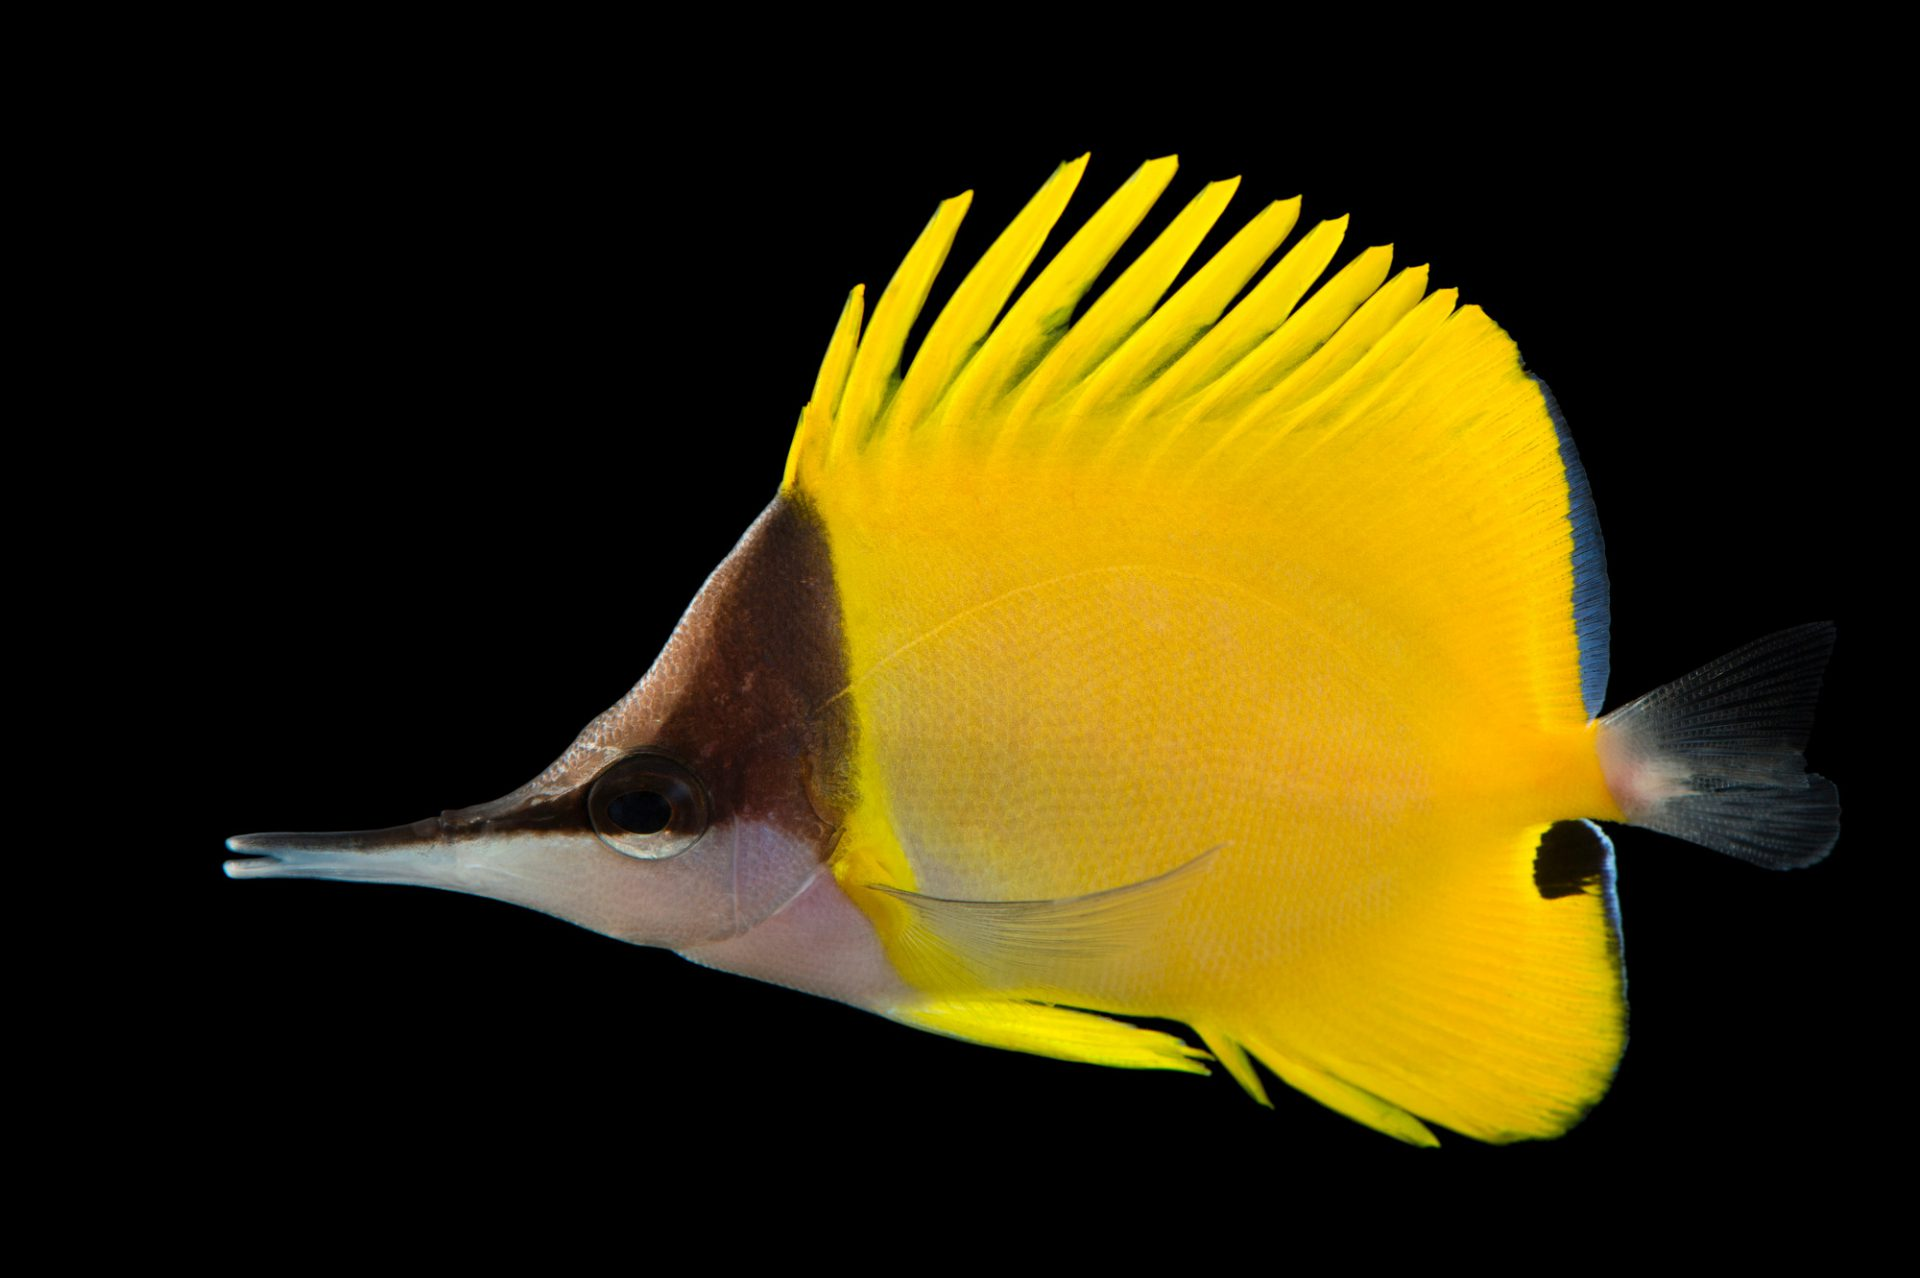 Picture of a yellow longnose butterflyfish (Forcipiger flavissimus) at Omaha's Henry Doorly Zoo and Aquarium.